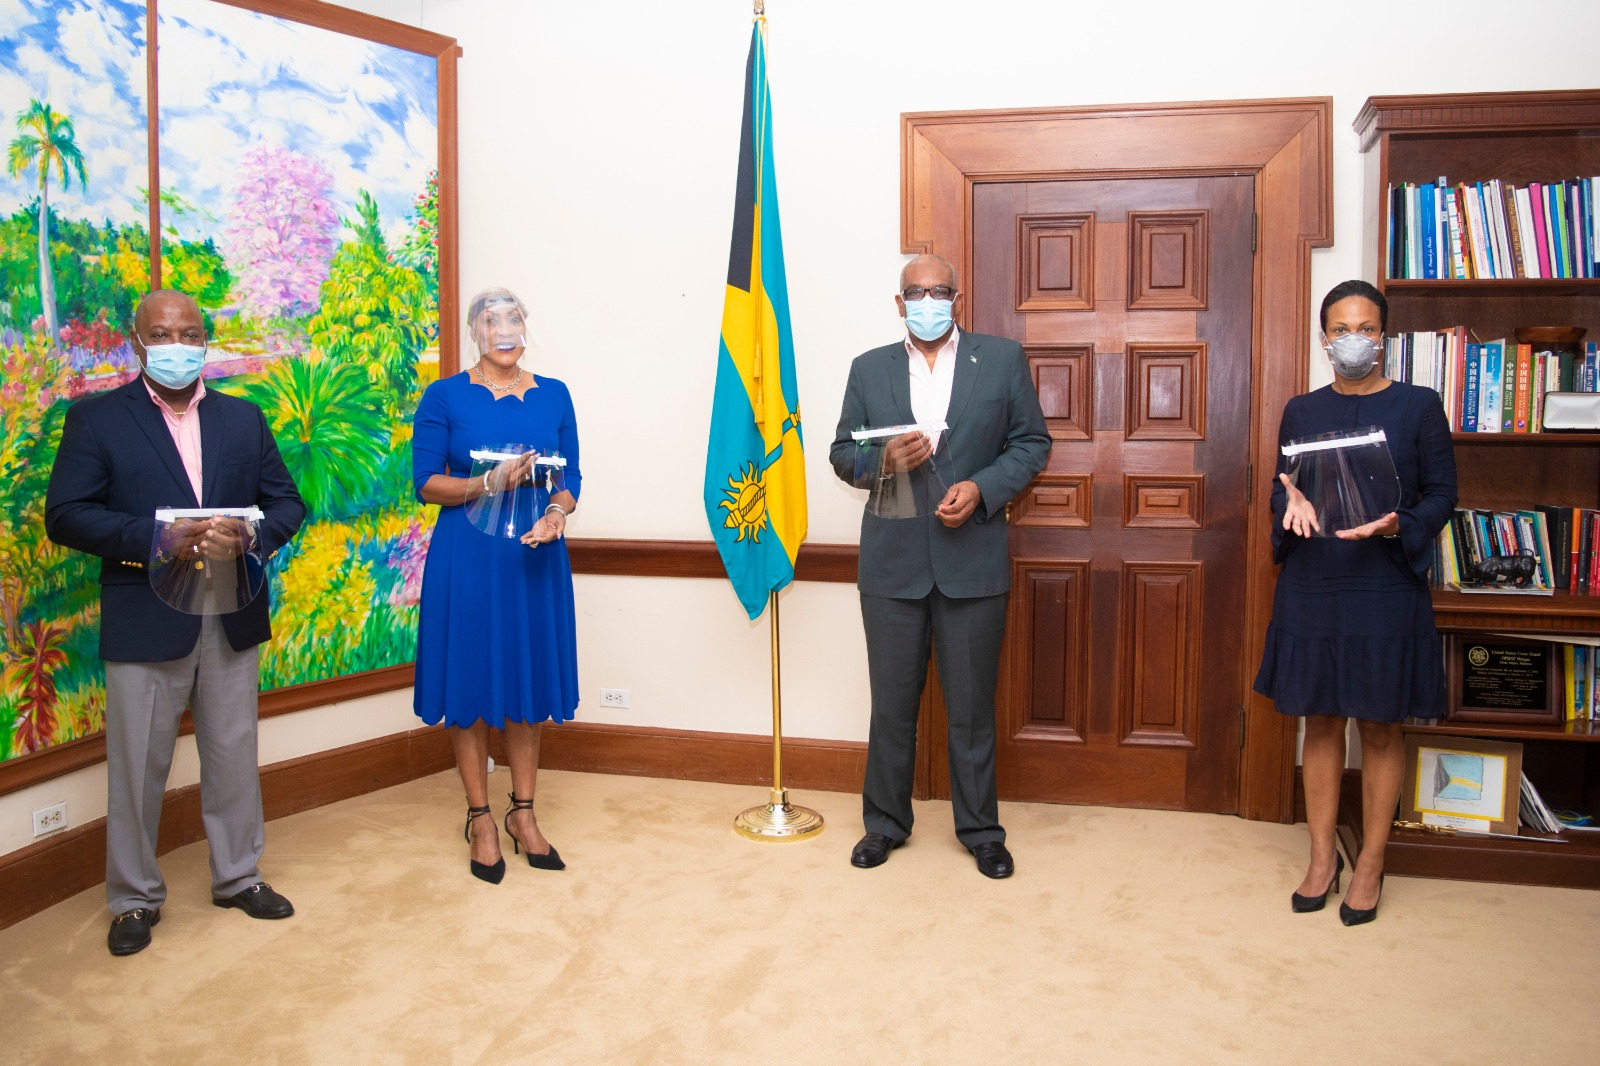 Prime Minister Minnis accepts donation of locally produced face shields for healthcare workers